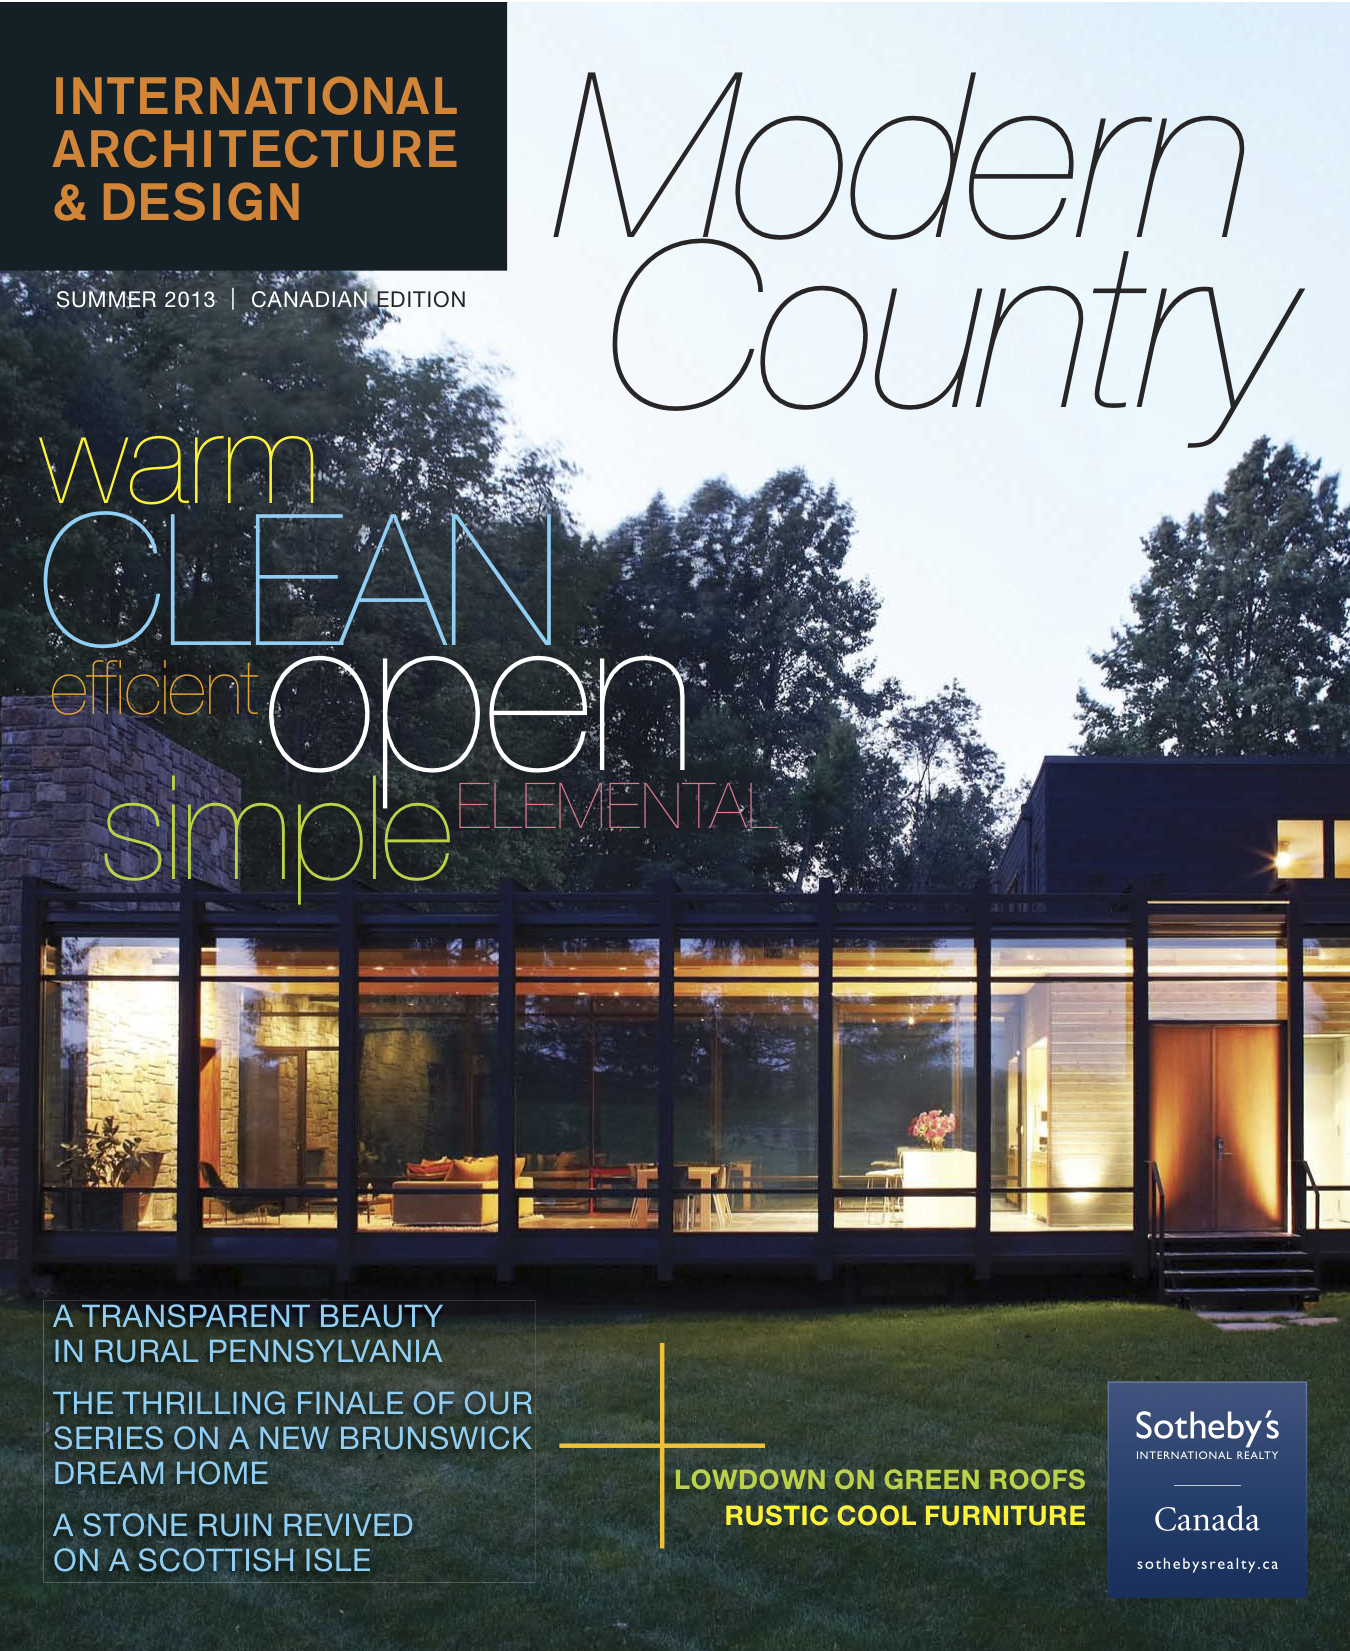 Saint john modern architecture featured in international - Architecture and design ...